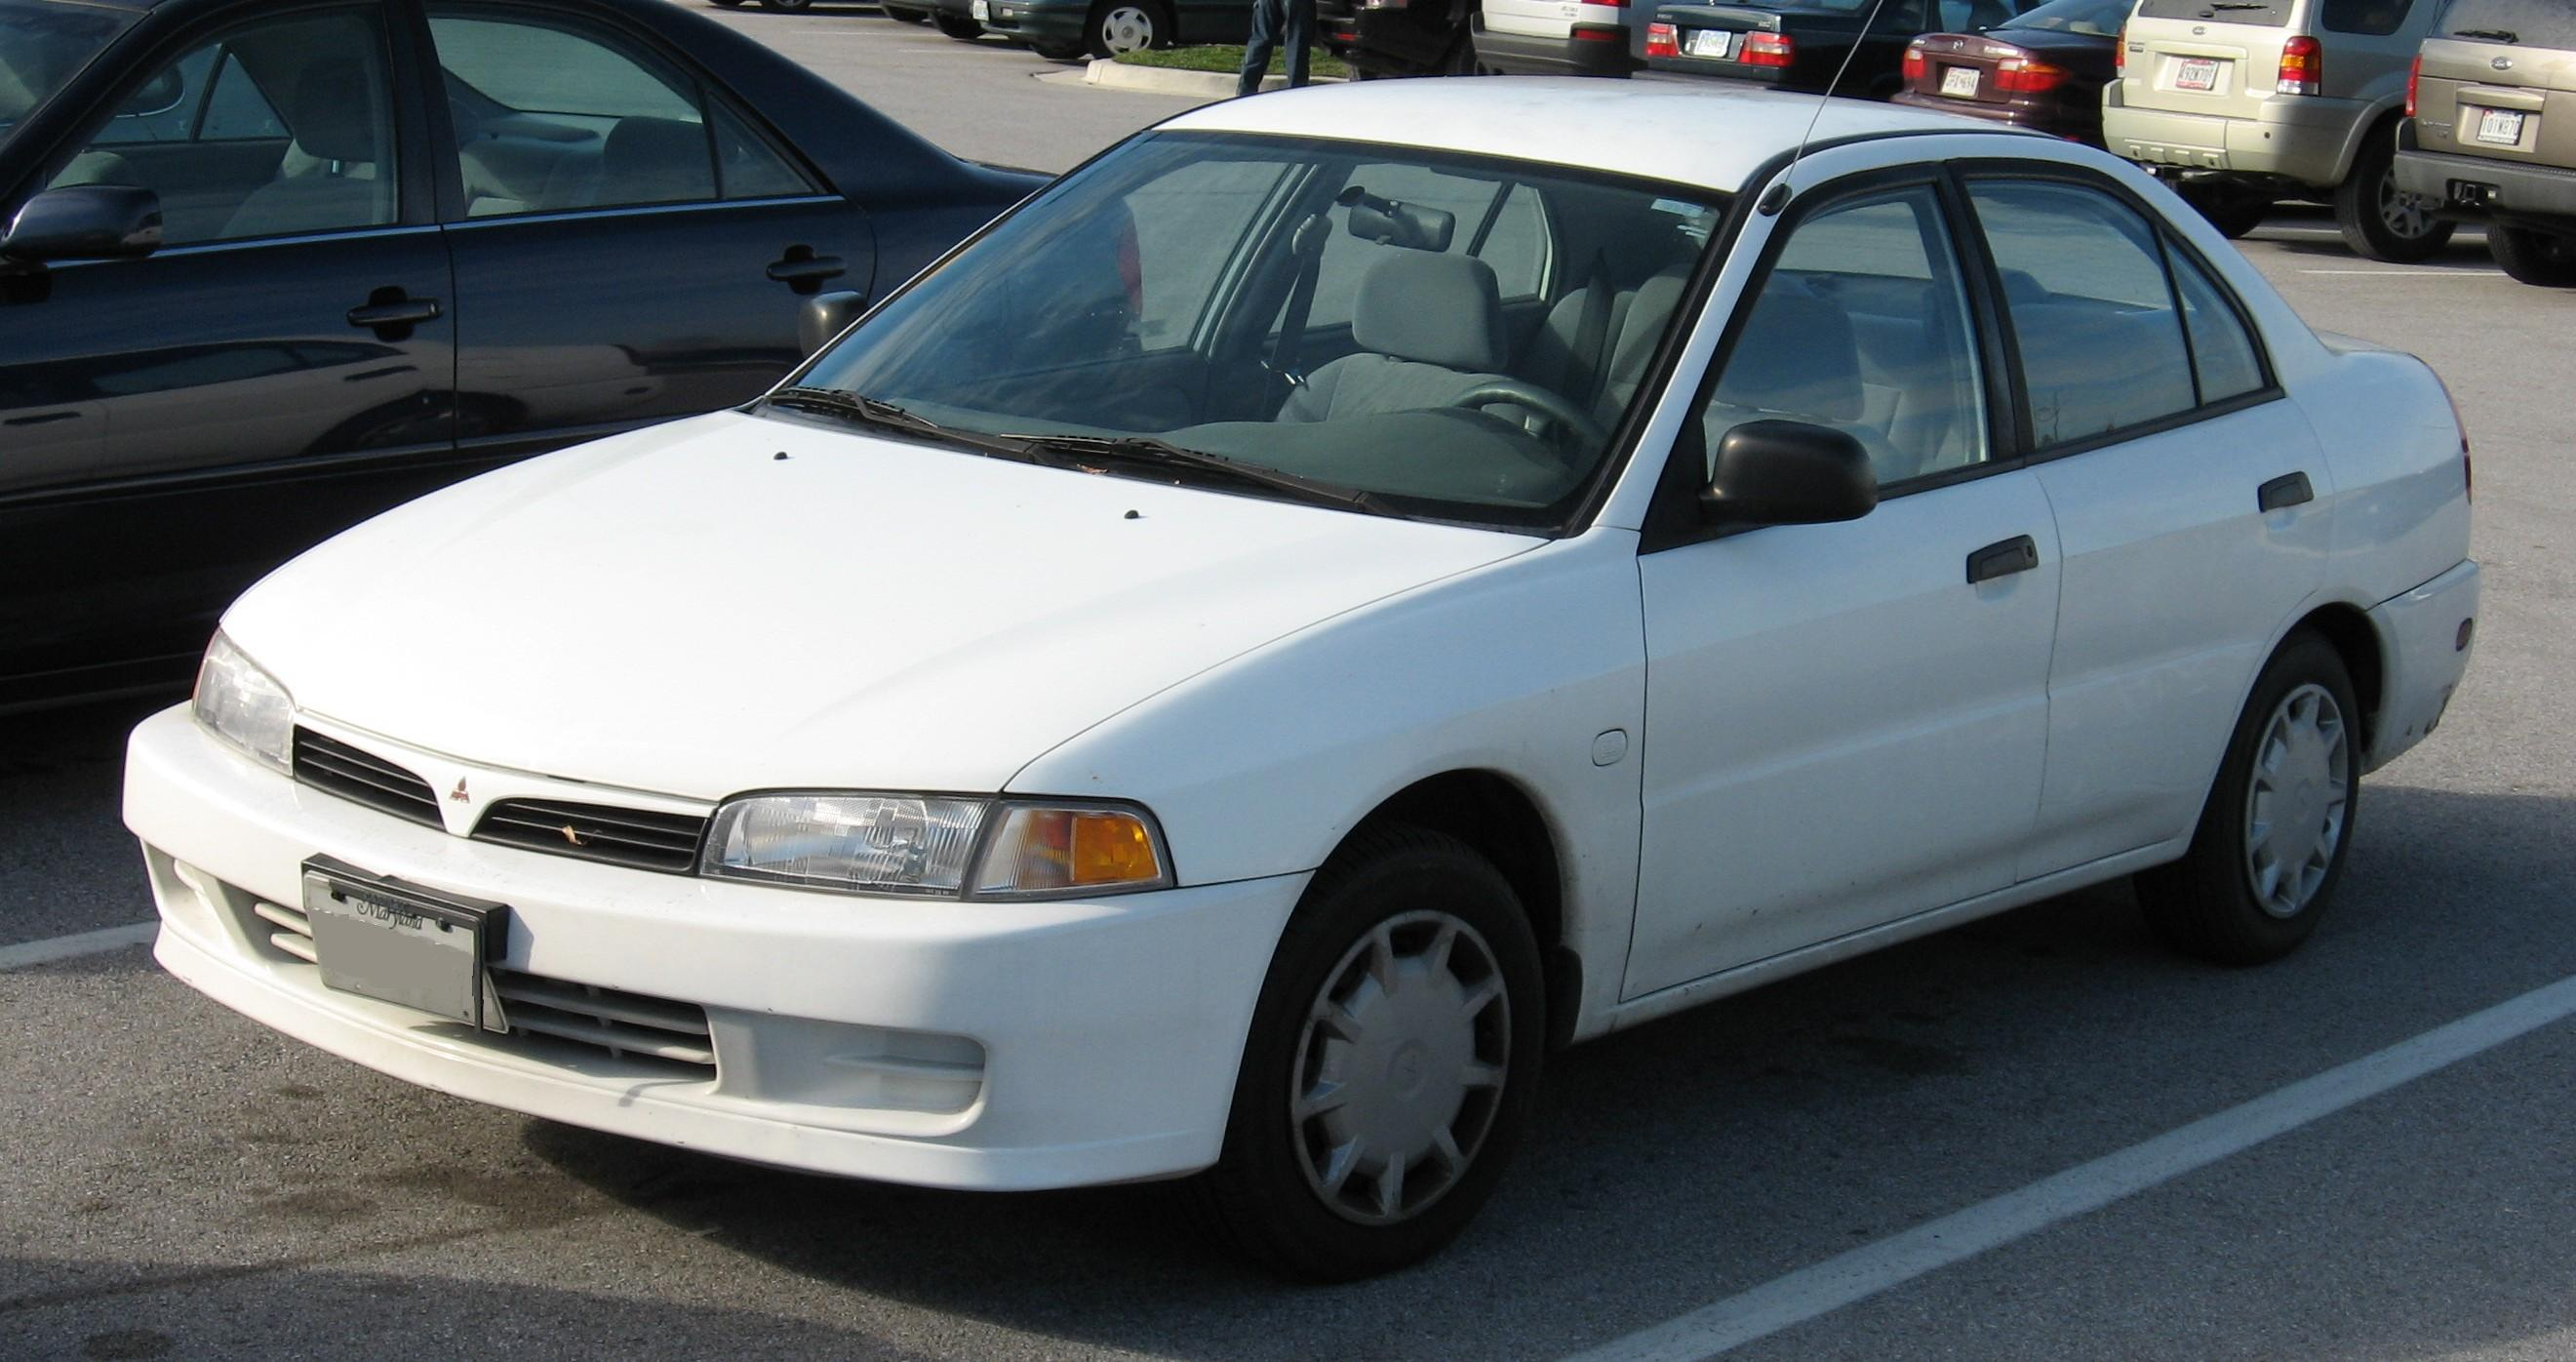 File:Mitsubishi Mirage.JPG - Wikimedia Commons